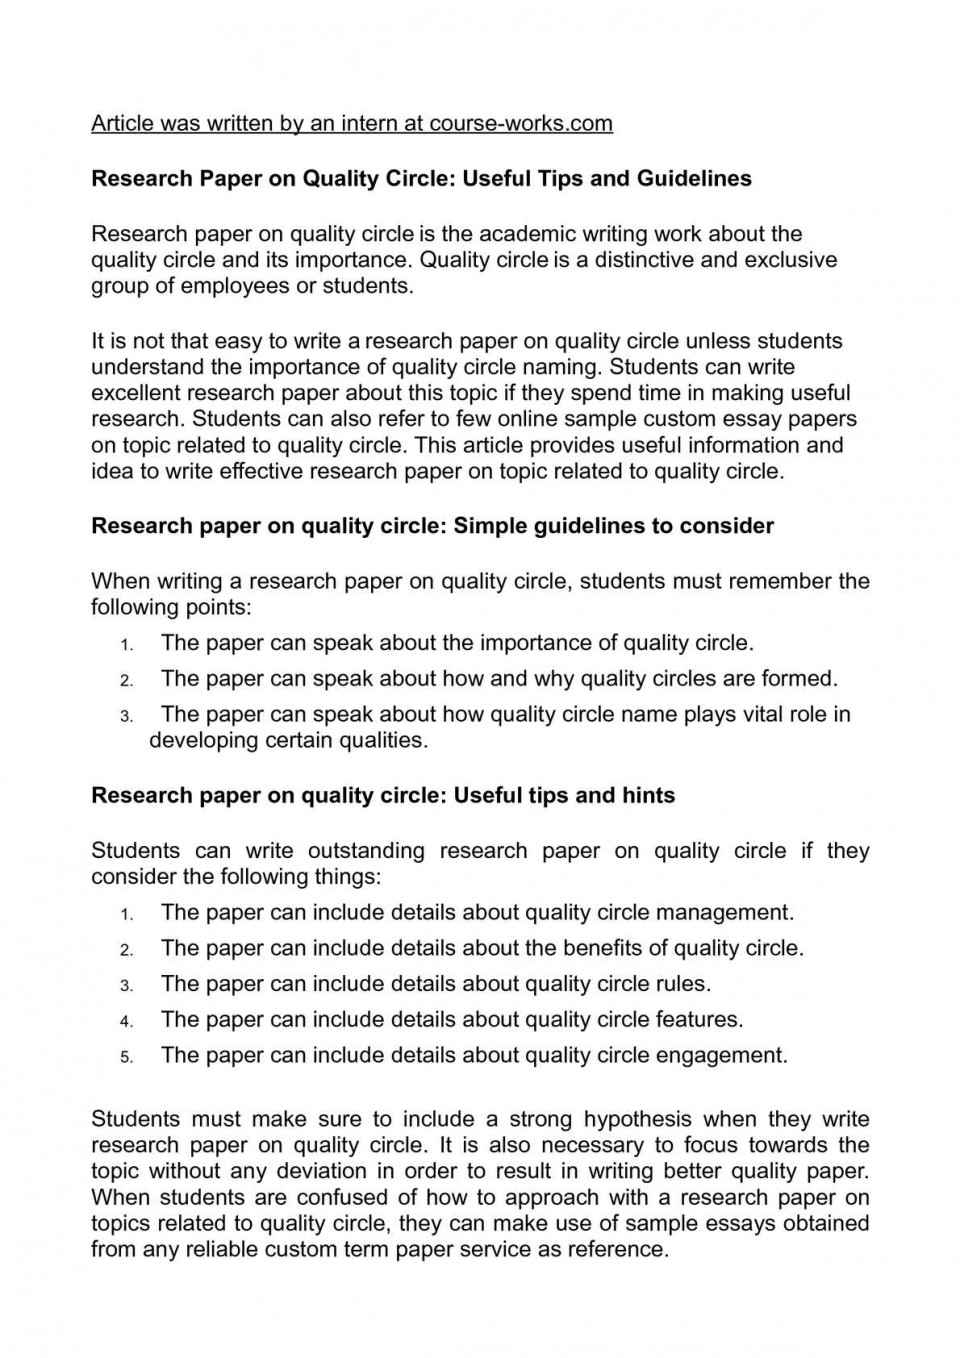 007 P1 Topics To Write Research Paper Beautiful On A Persuasive Computer Science 960